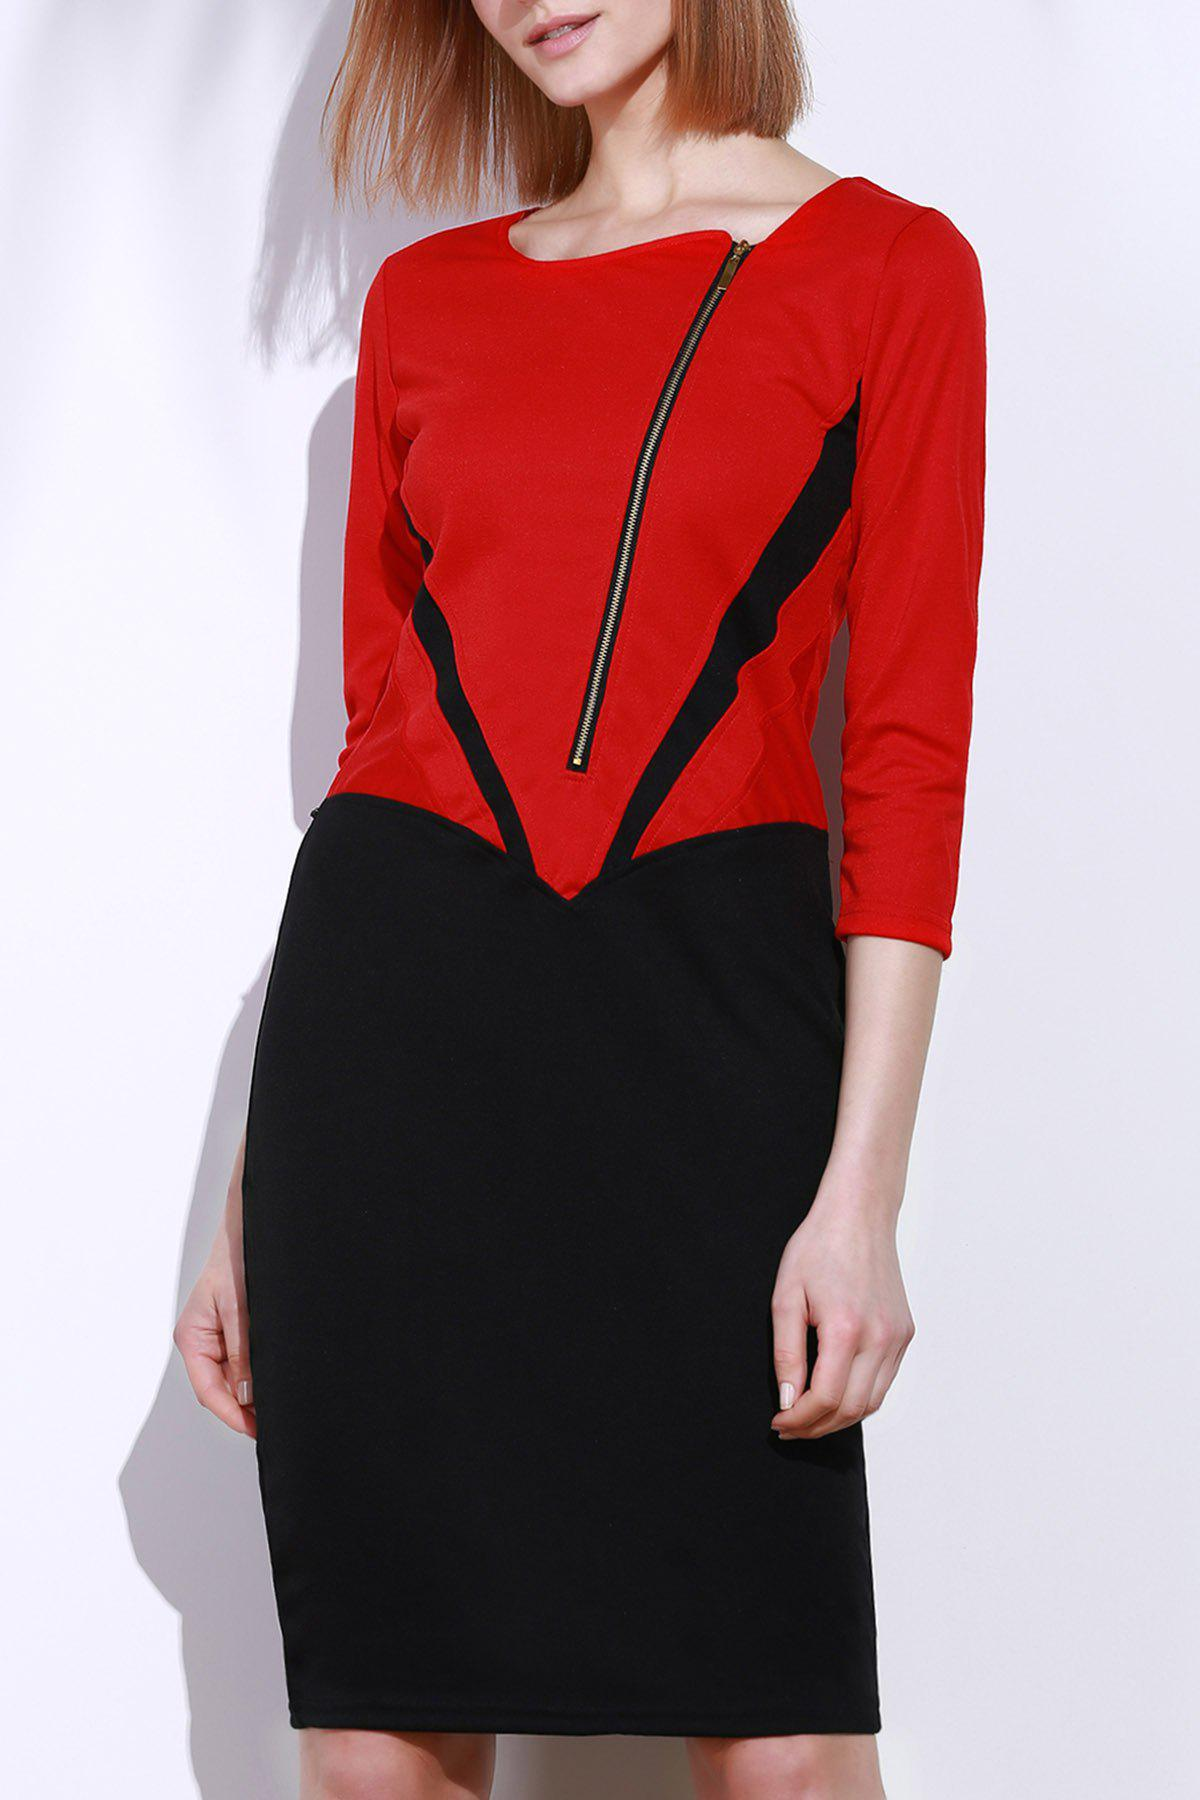 Elegant 3/4 Sleeve Square Neck Zippered Color Block Women's Dress - RED XL